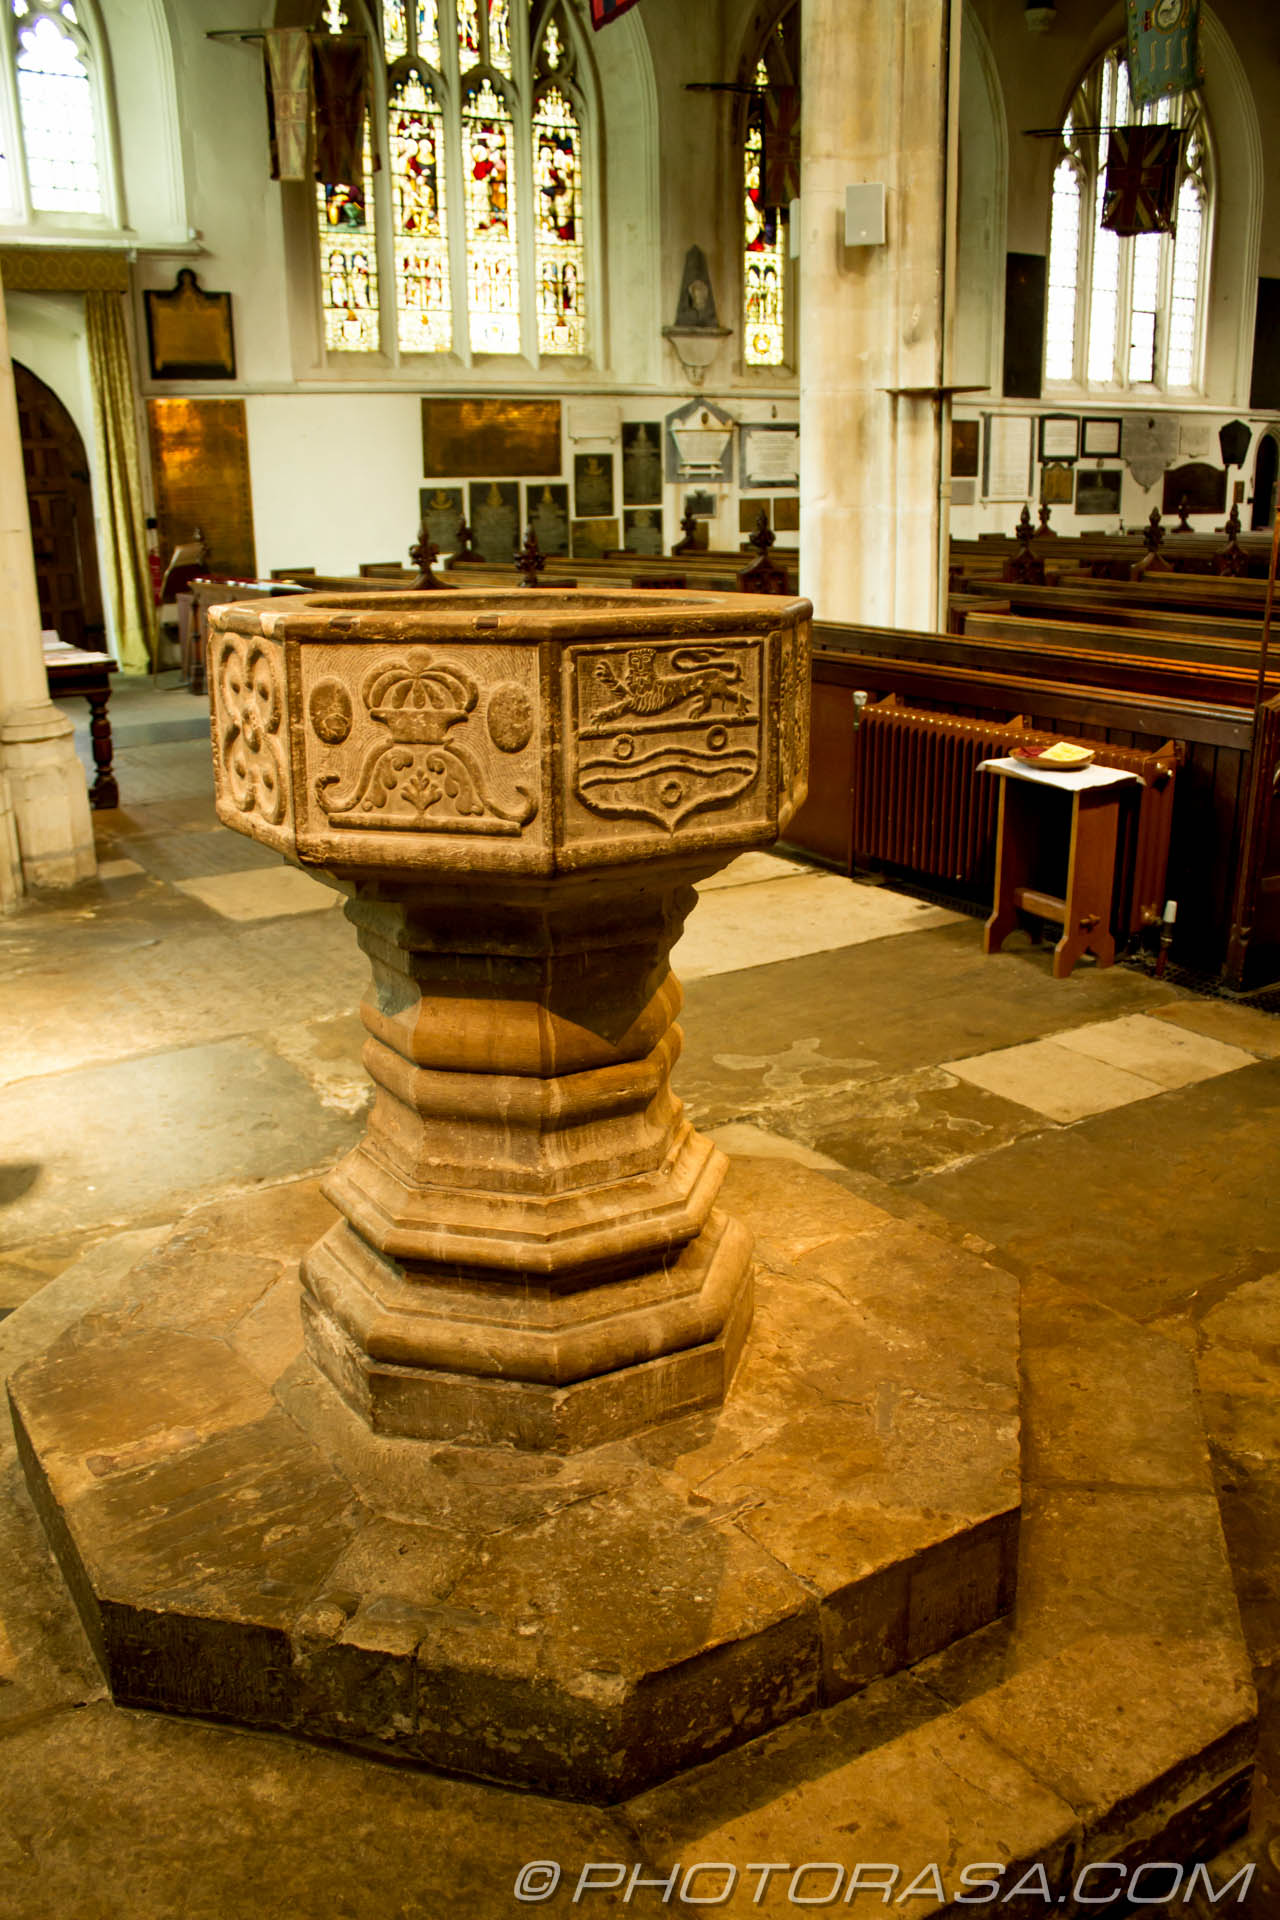 http://photorasa.com/inside-all-saints-church-in-maidstone/all-saints-maidstone-font/